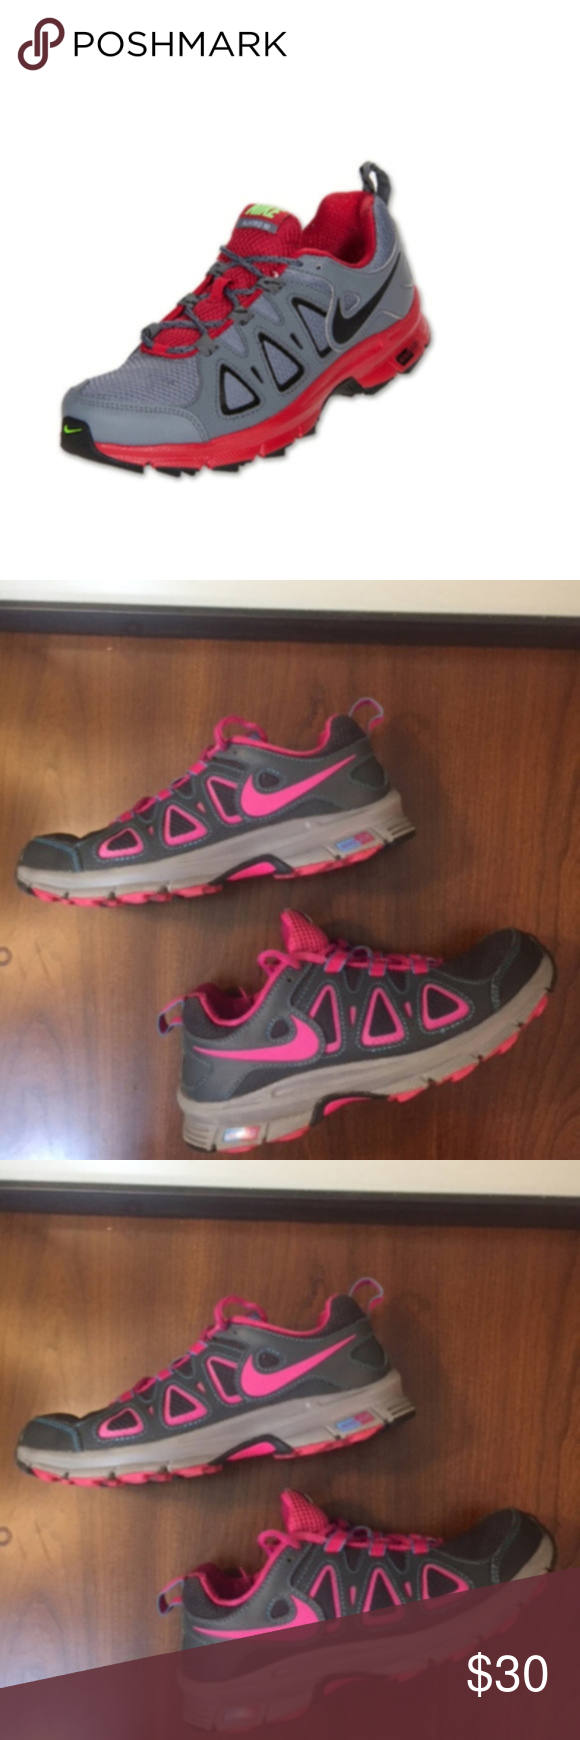 26769e580c8ac Nike Air Alvord Trail Running Shoes (6.5) Excellent condition. Water ...